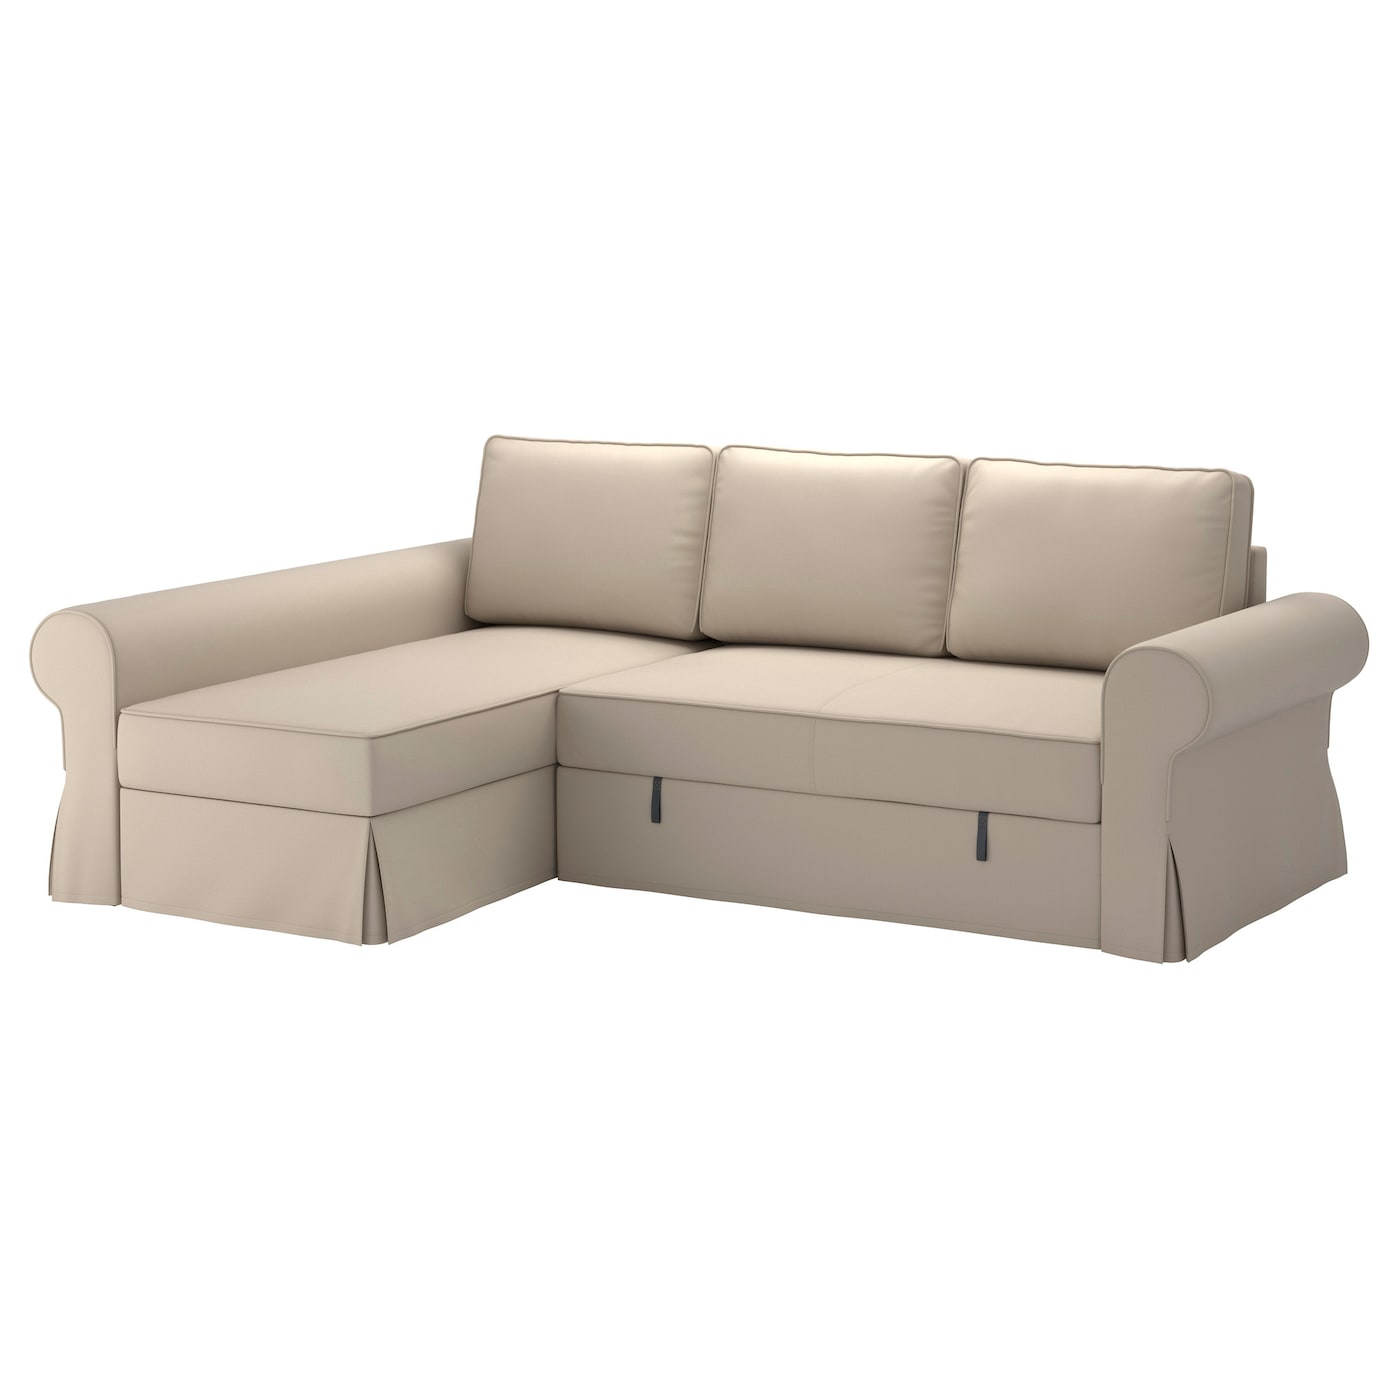 Backabro cover sofa bed with chaise longue ramna beige ikea for Oferta sofa cama chaise longue